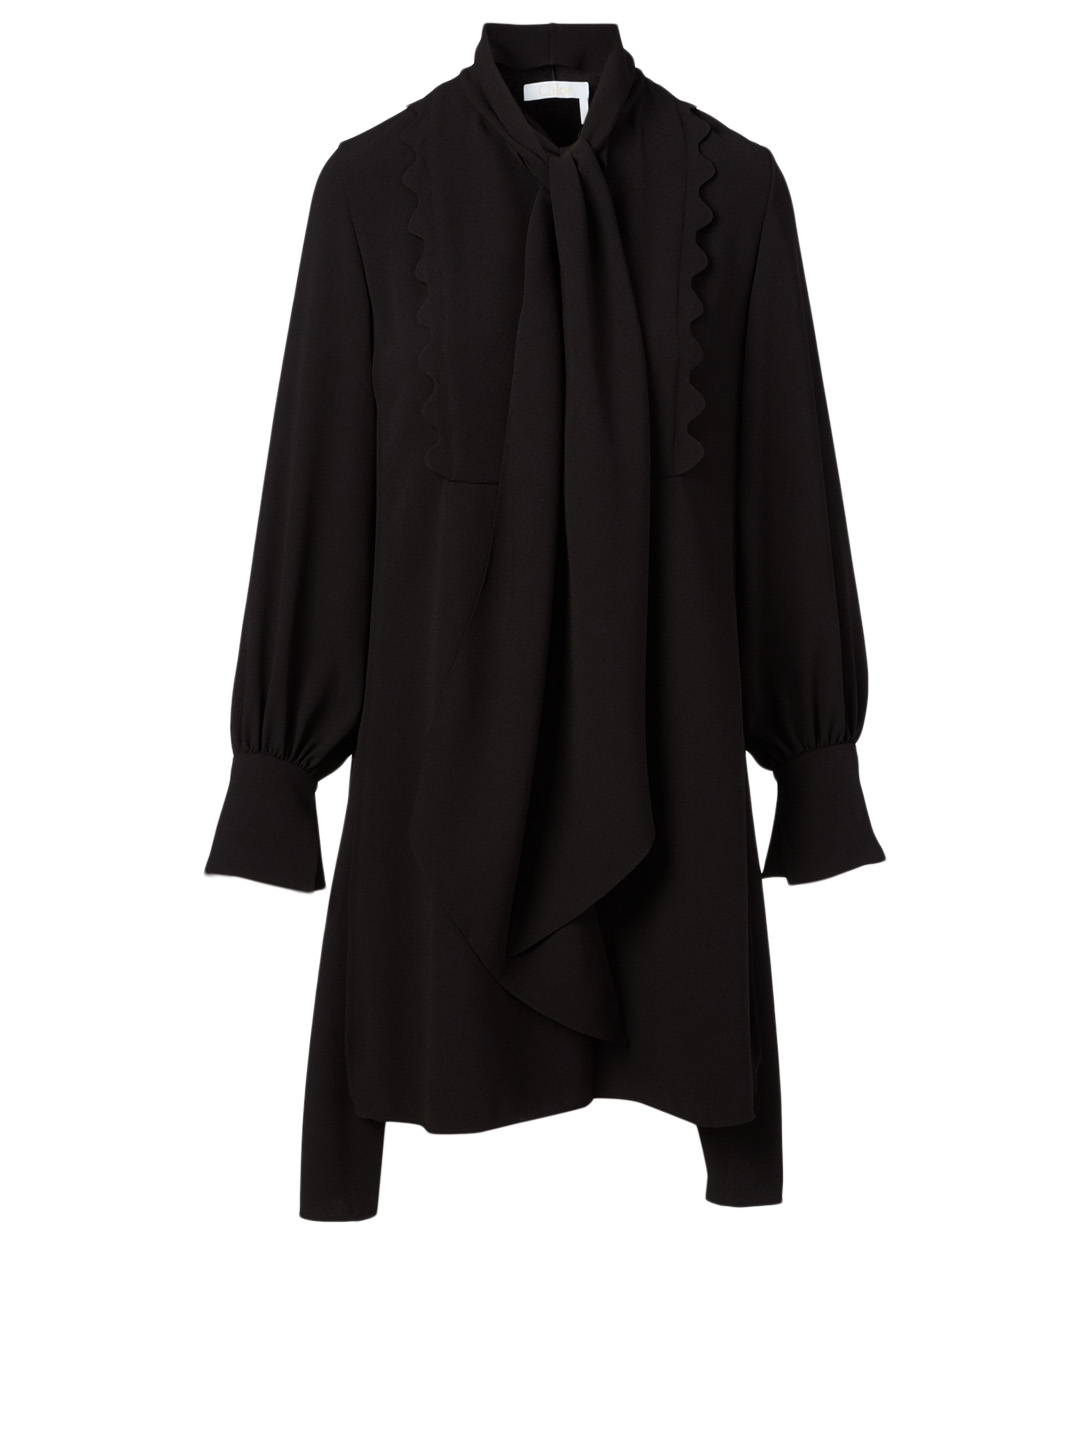 CHLOÉ Long-Sleeve Dress With Tie Neck Women's Black